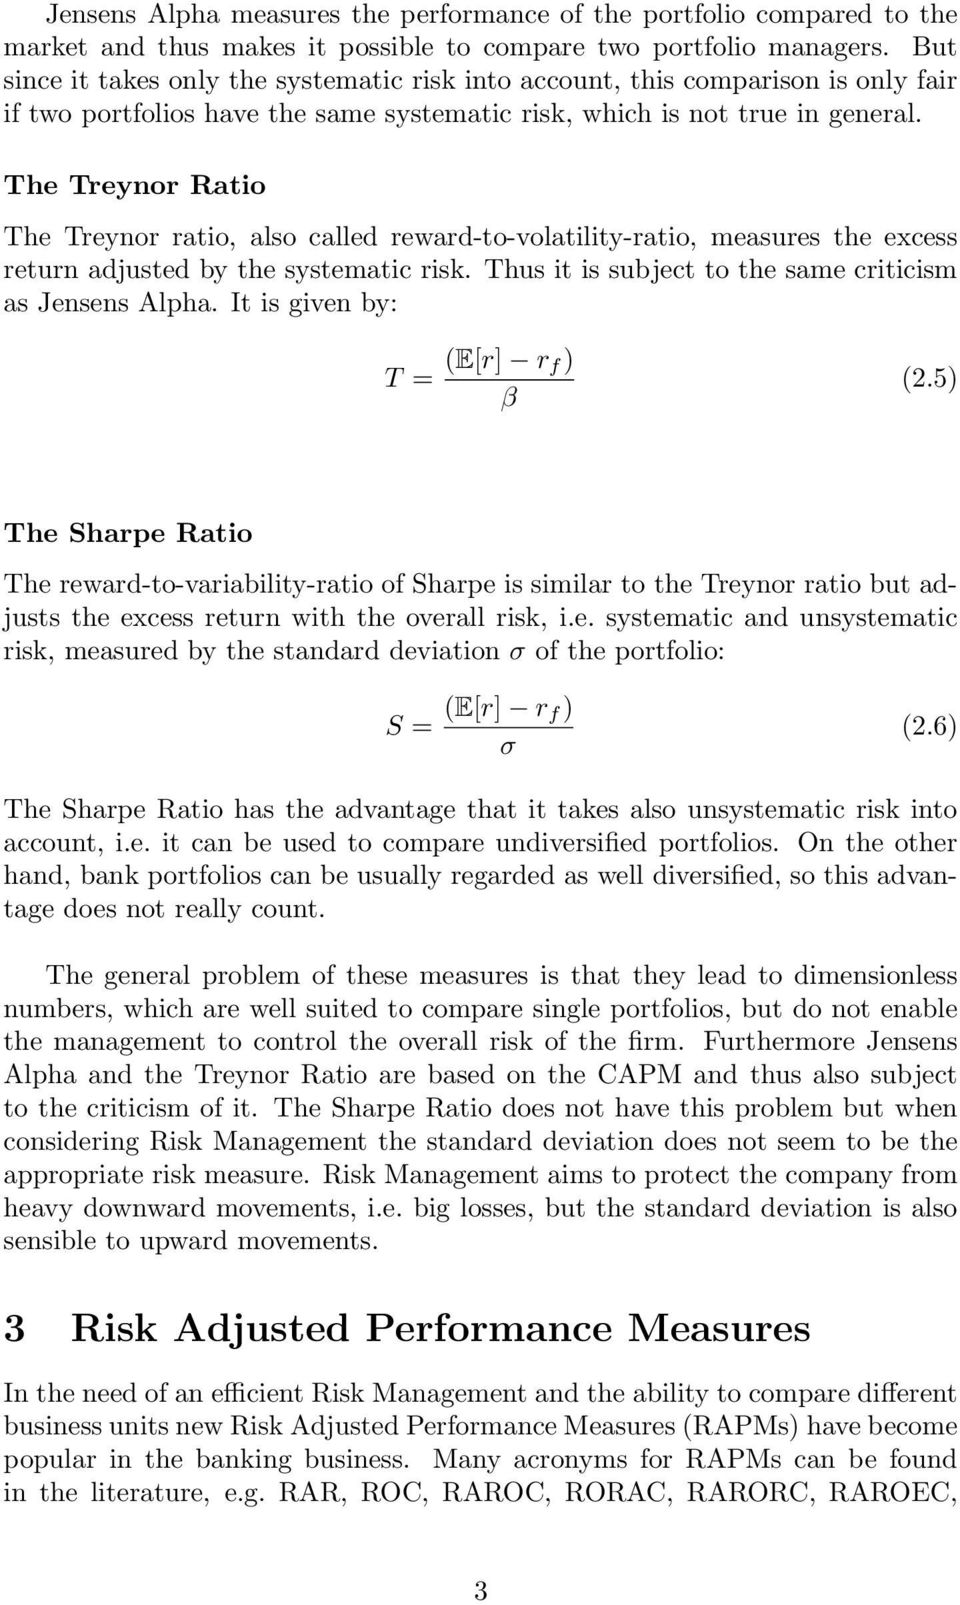 The Treynor Ratio The Treynor ratio, also called reward-to-volatility-ratio, measures the excess return adjusted by the systematic risk. Thus it is subject to the same criticism as Jensens Alpha.